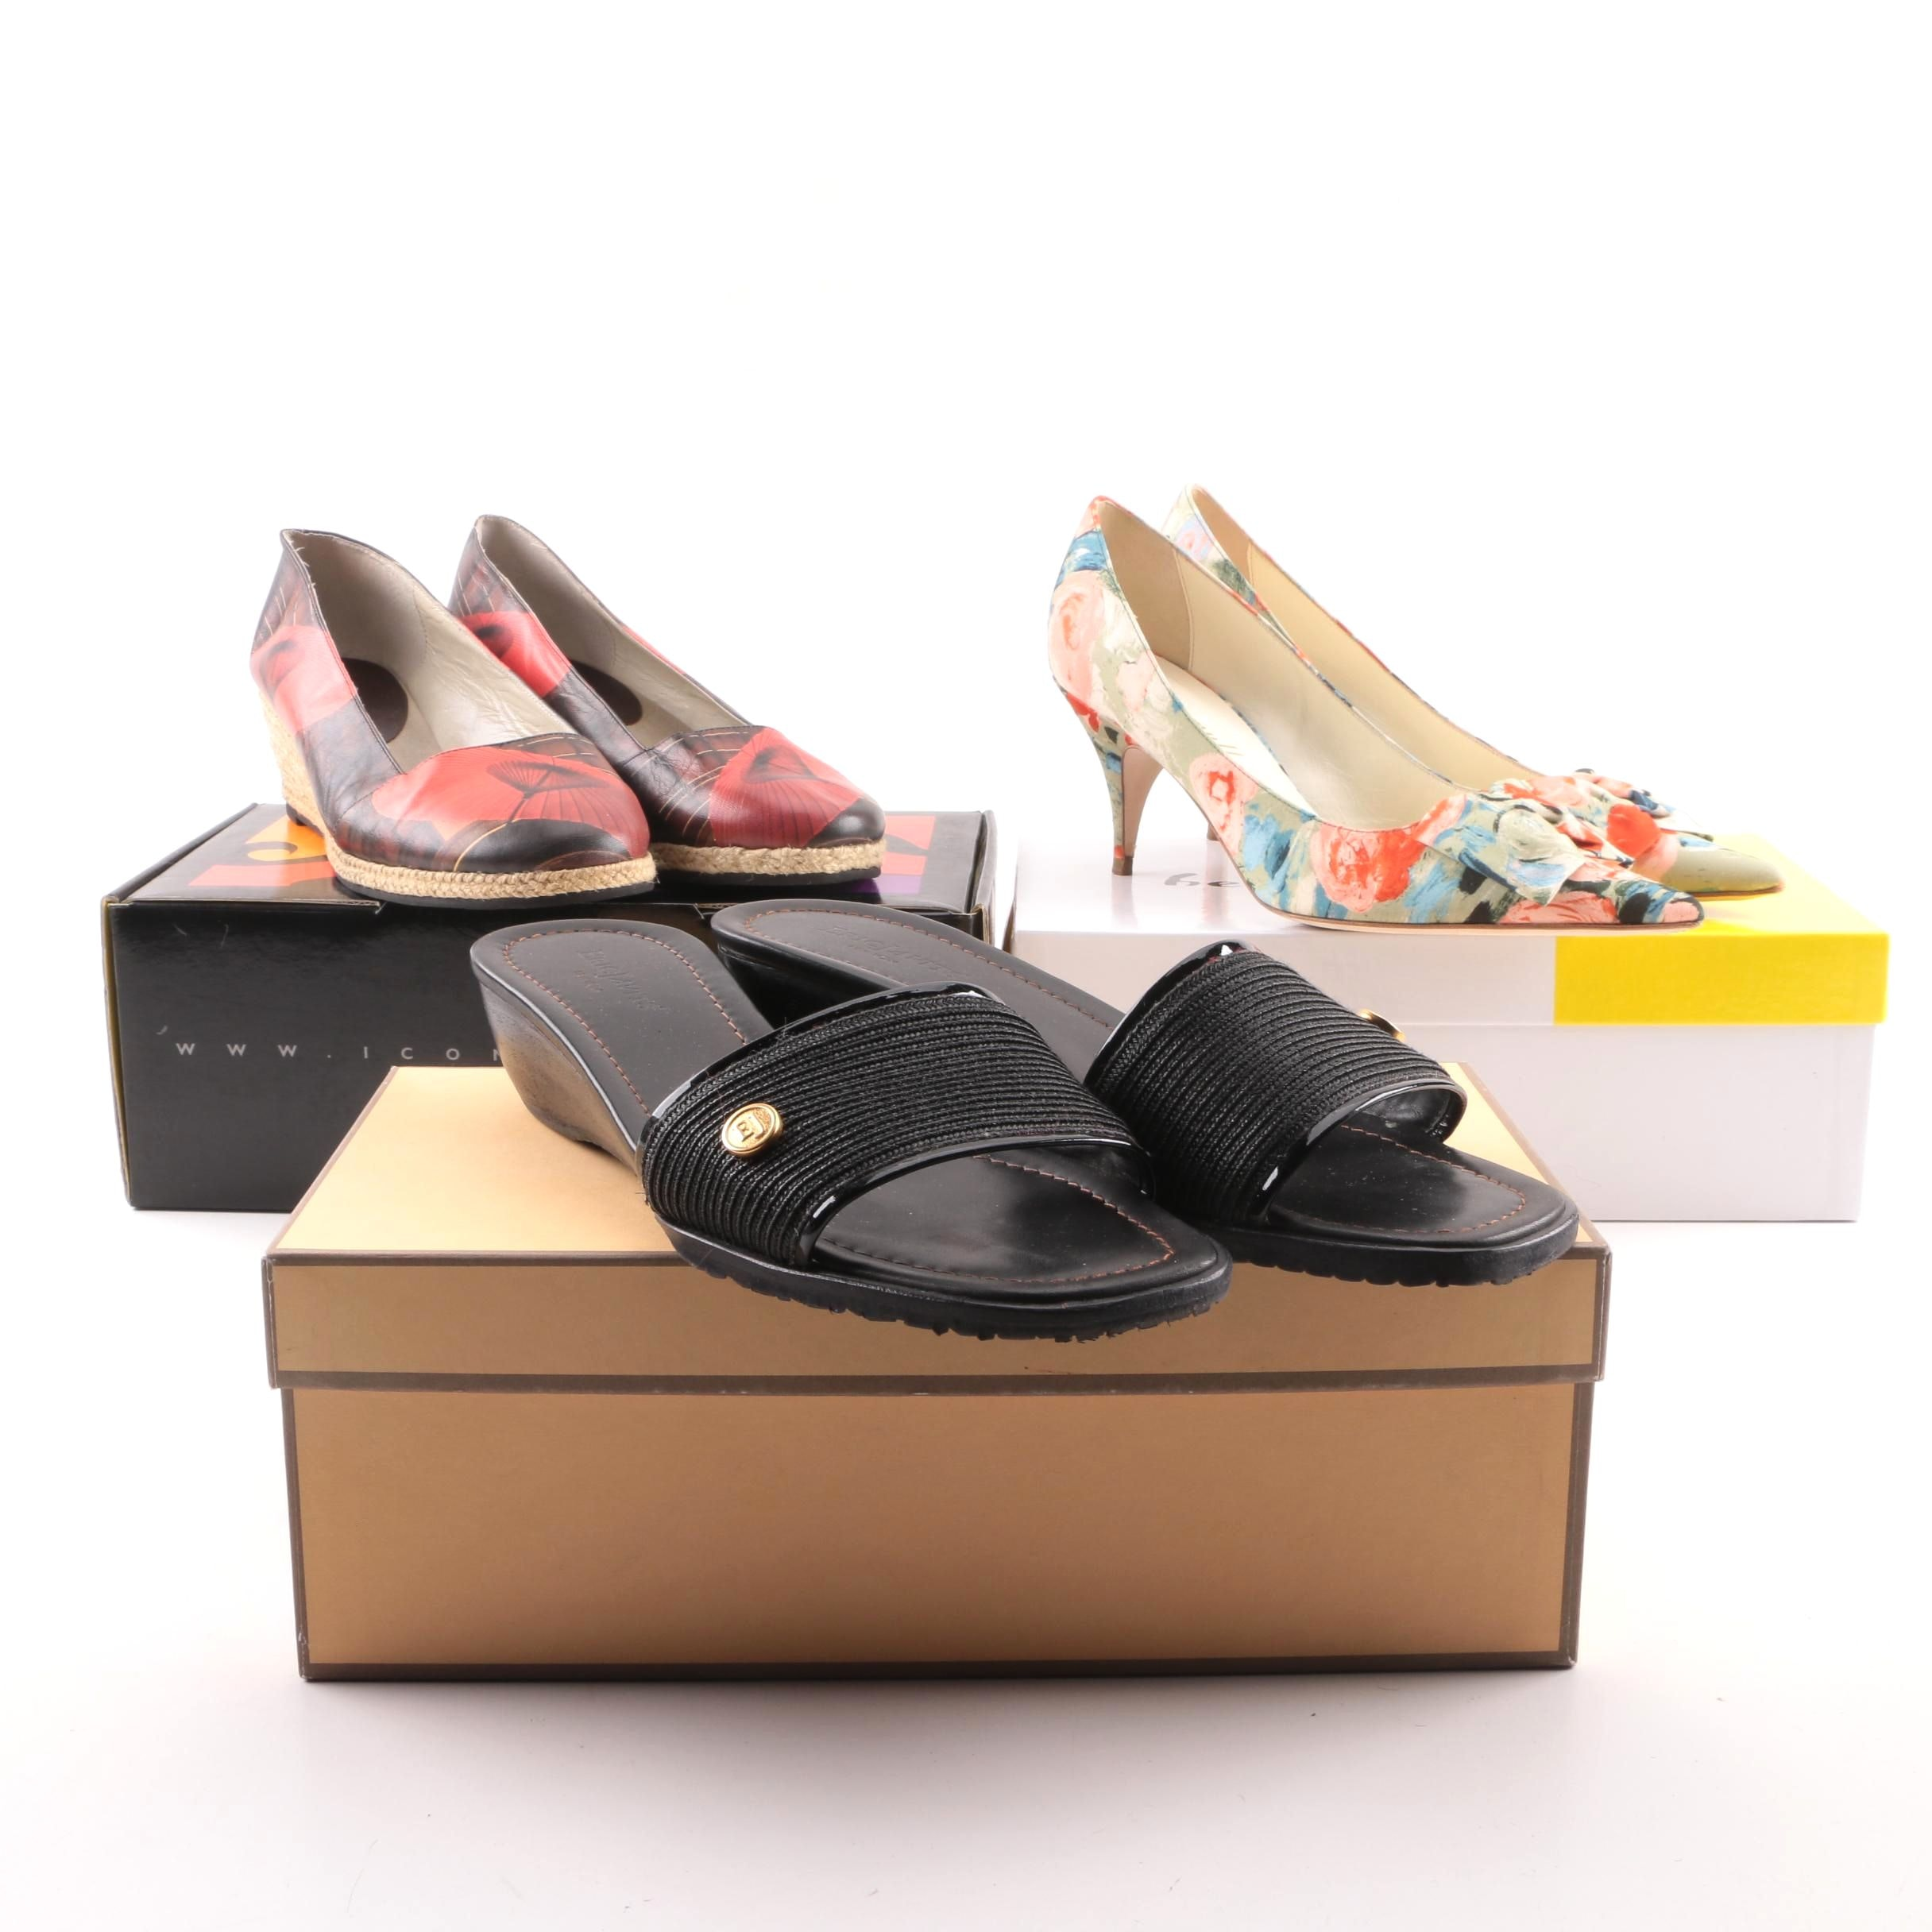 Women's Pumps, Wedges and Slide Sandals including Eric Javits